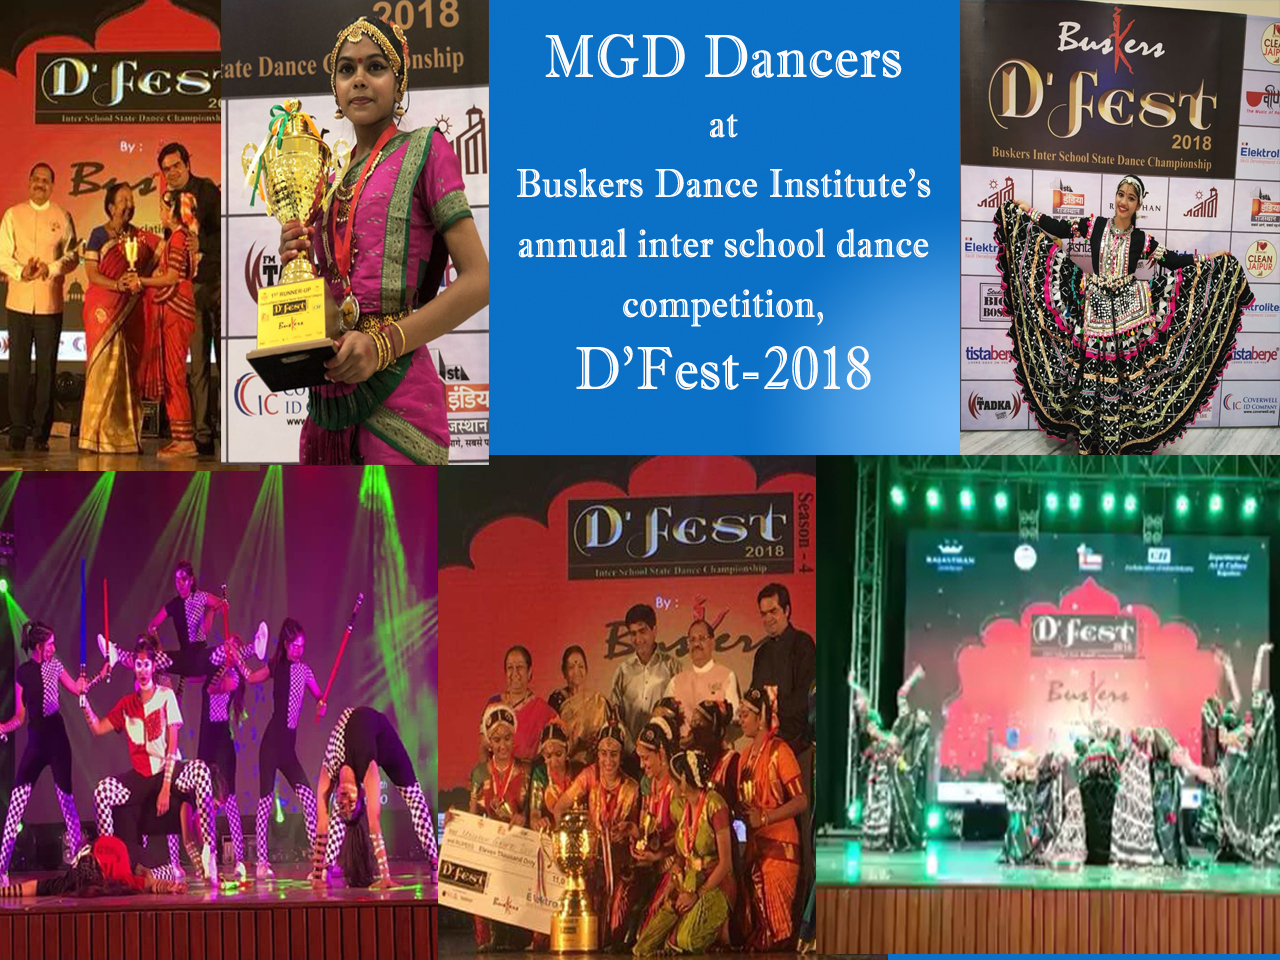 MGD dancers at Buskers Dance Institute's annual inter school dance competition, D'Fest-2018